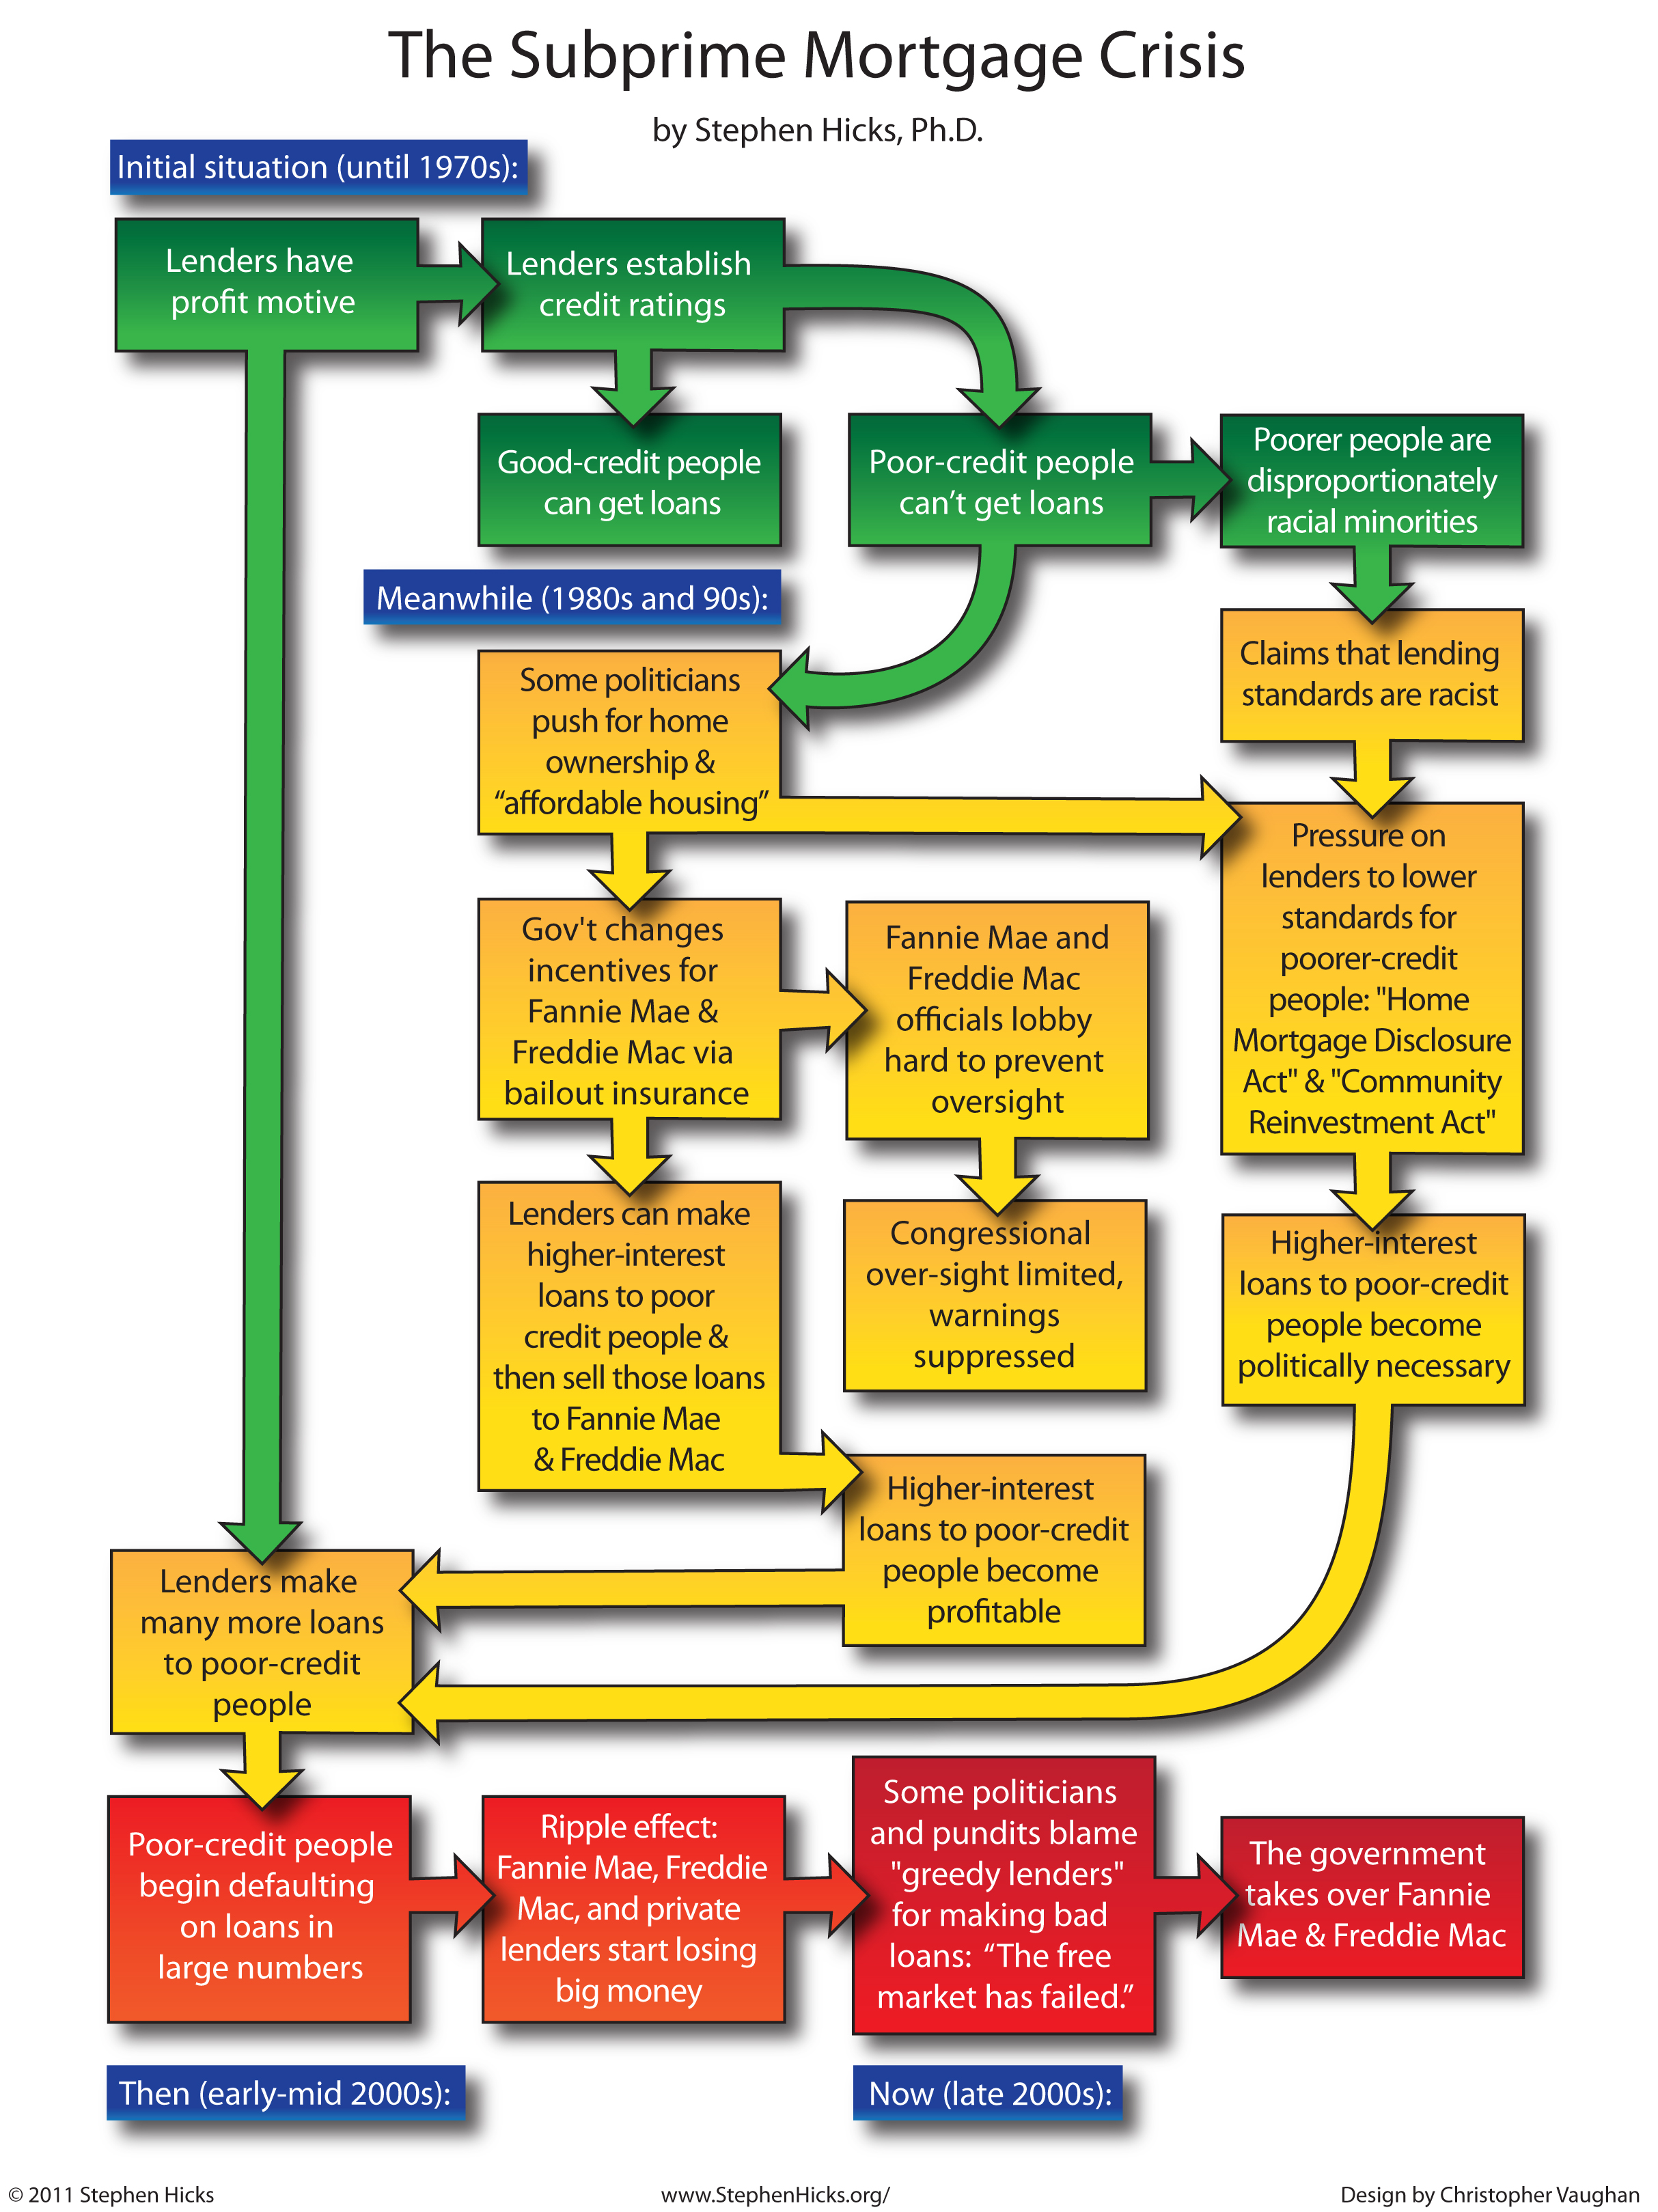 Subprime mortgage crisis history flowchart stephen hicks phd click on the image for nvjuhfo Image collections